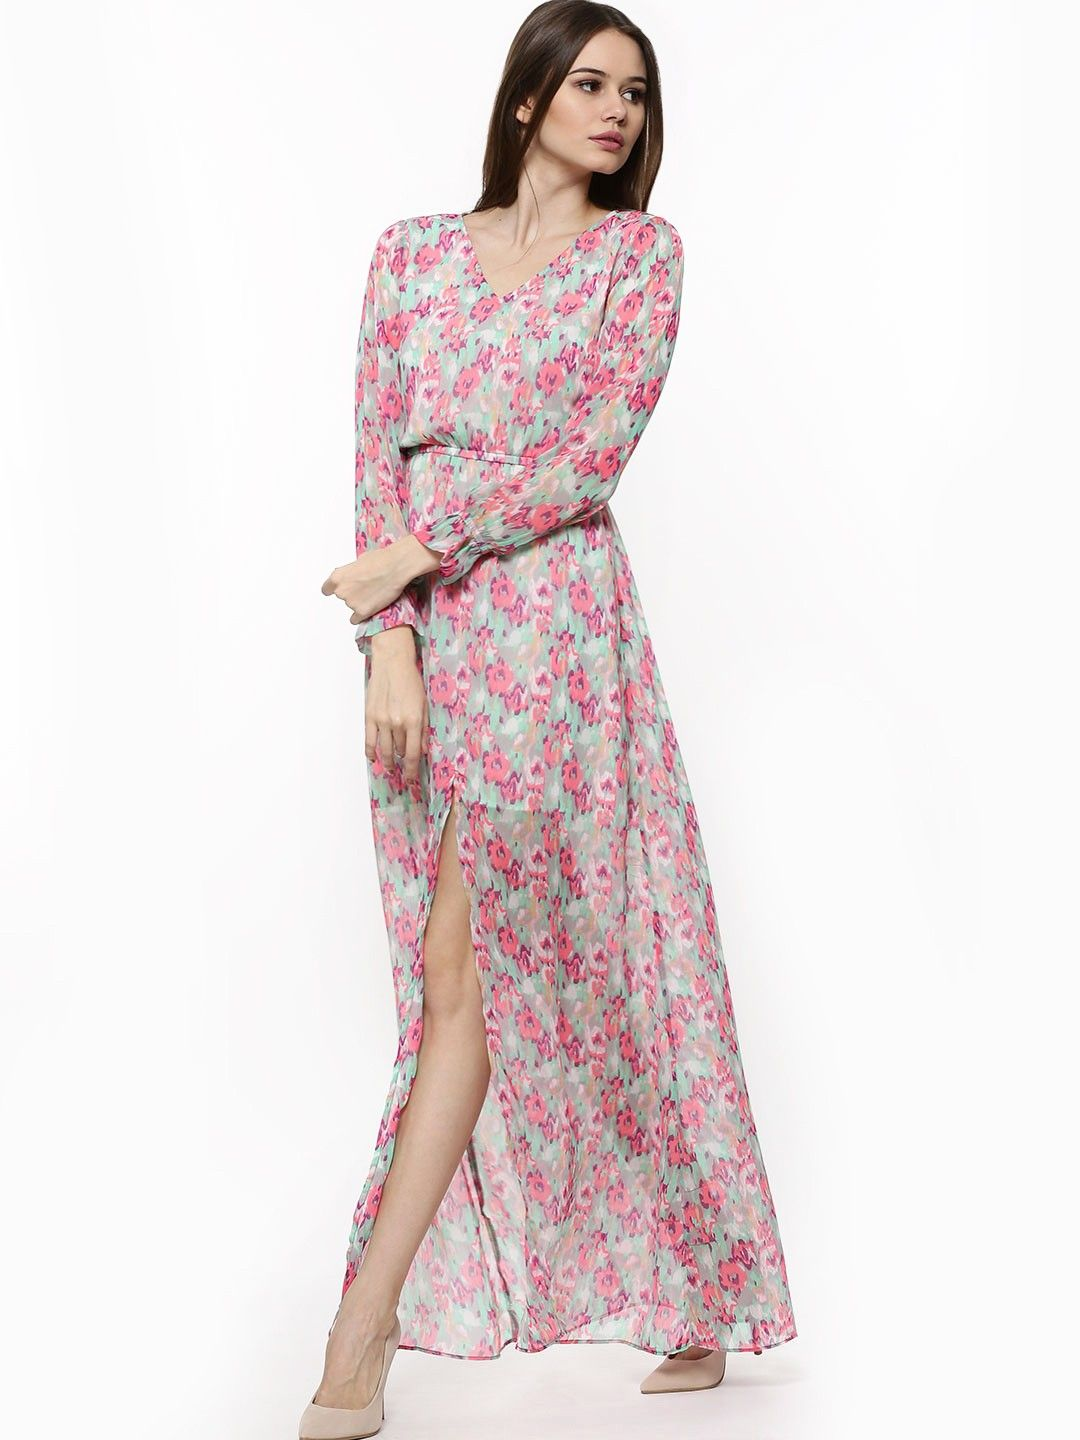 bcb101f612 KOOVS Printed Neon Floral Maxi Dress - Buy Women s Maxi Dresses online in  India